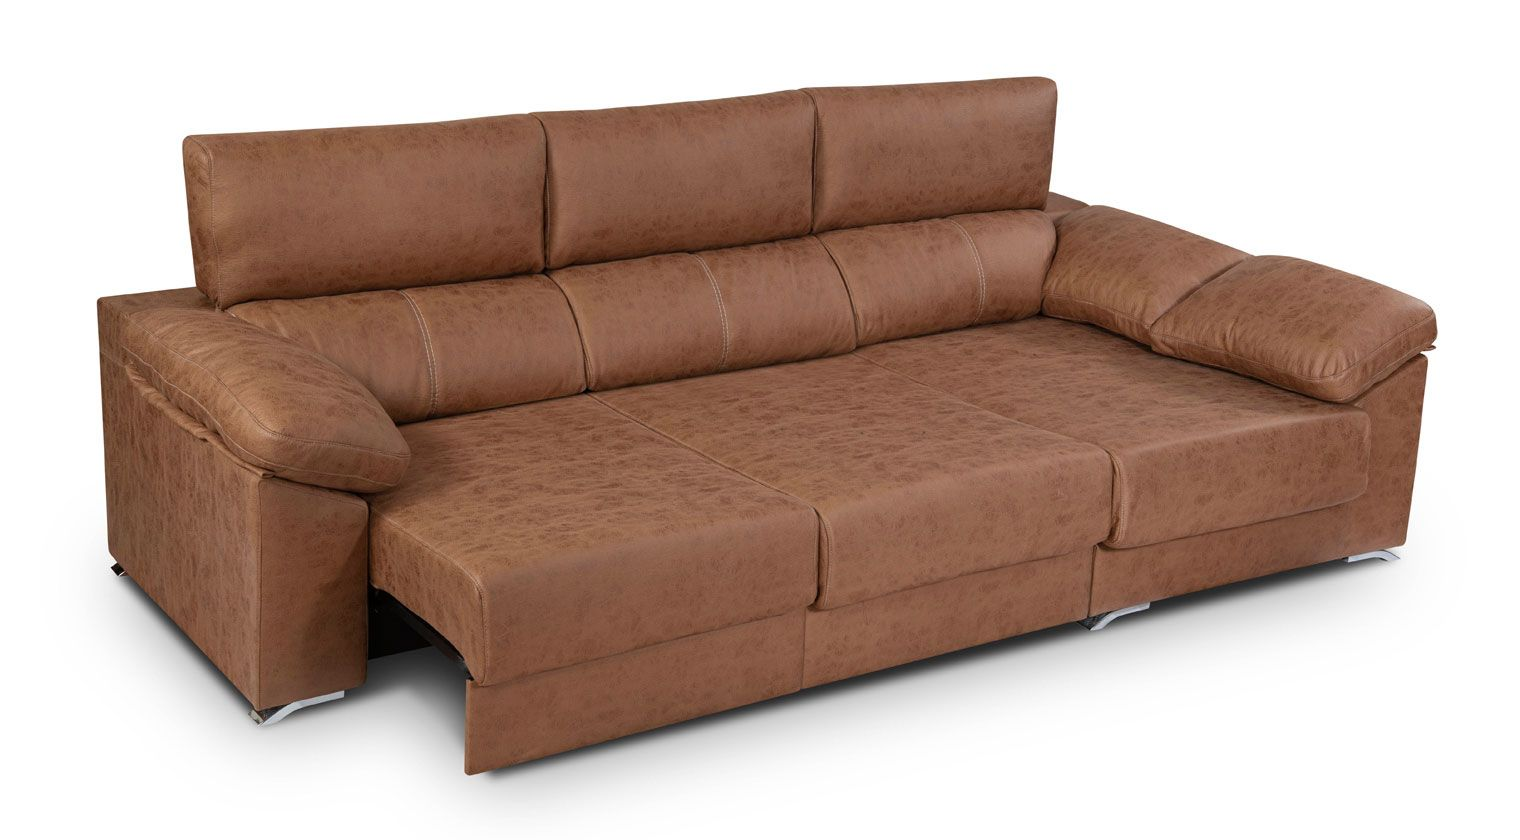 Comprar chaise longue tela lleida mod sofa 4 plazas chaise for Sofas baratos alicante